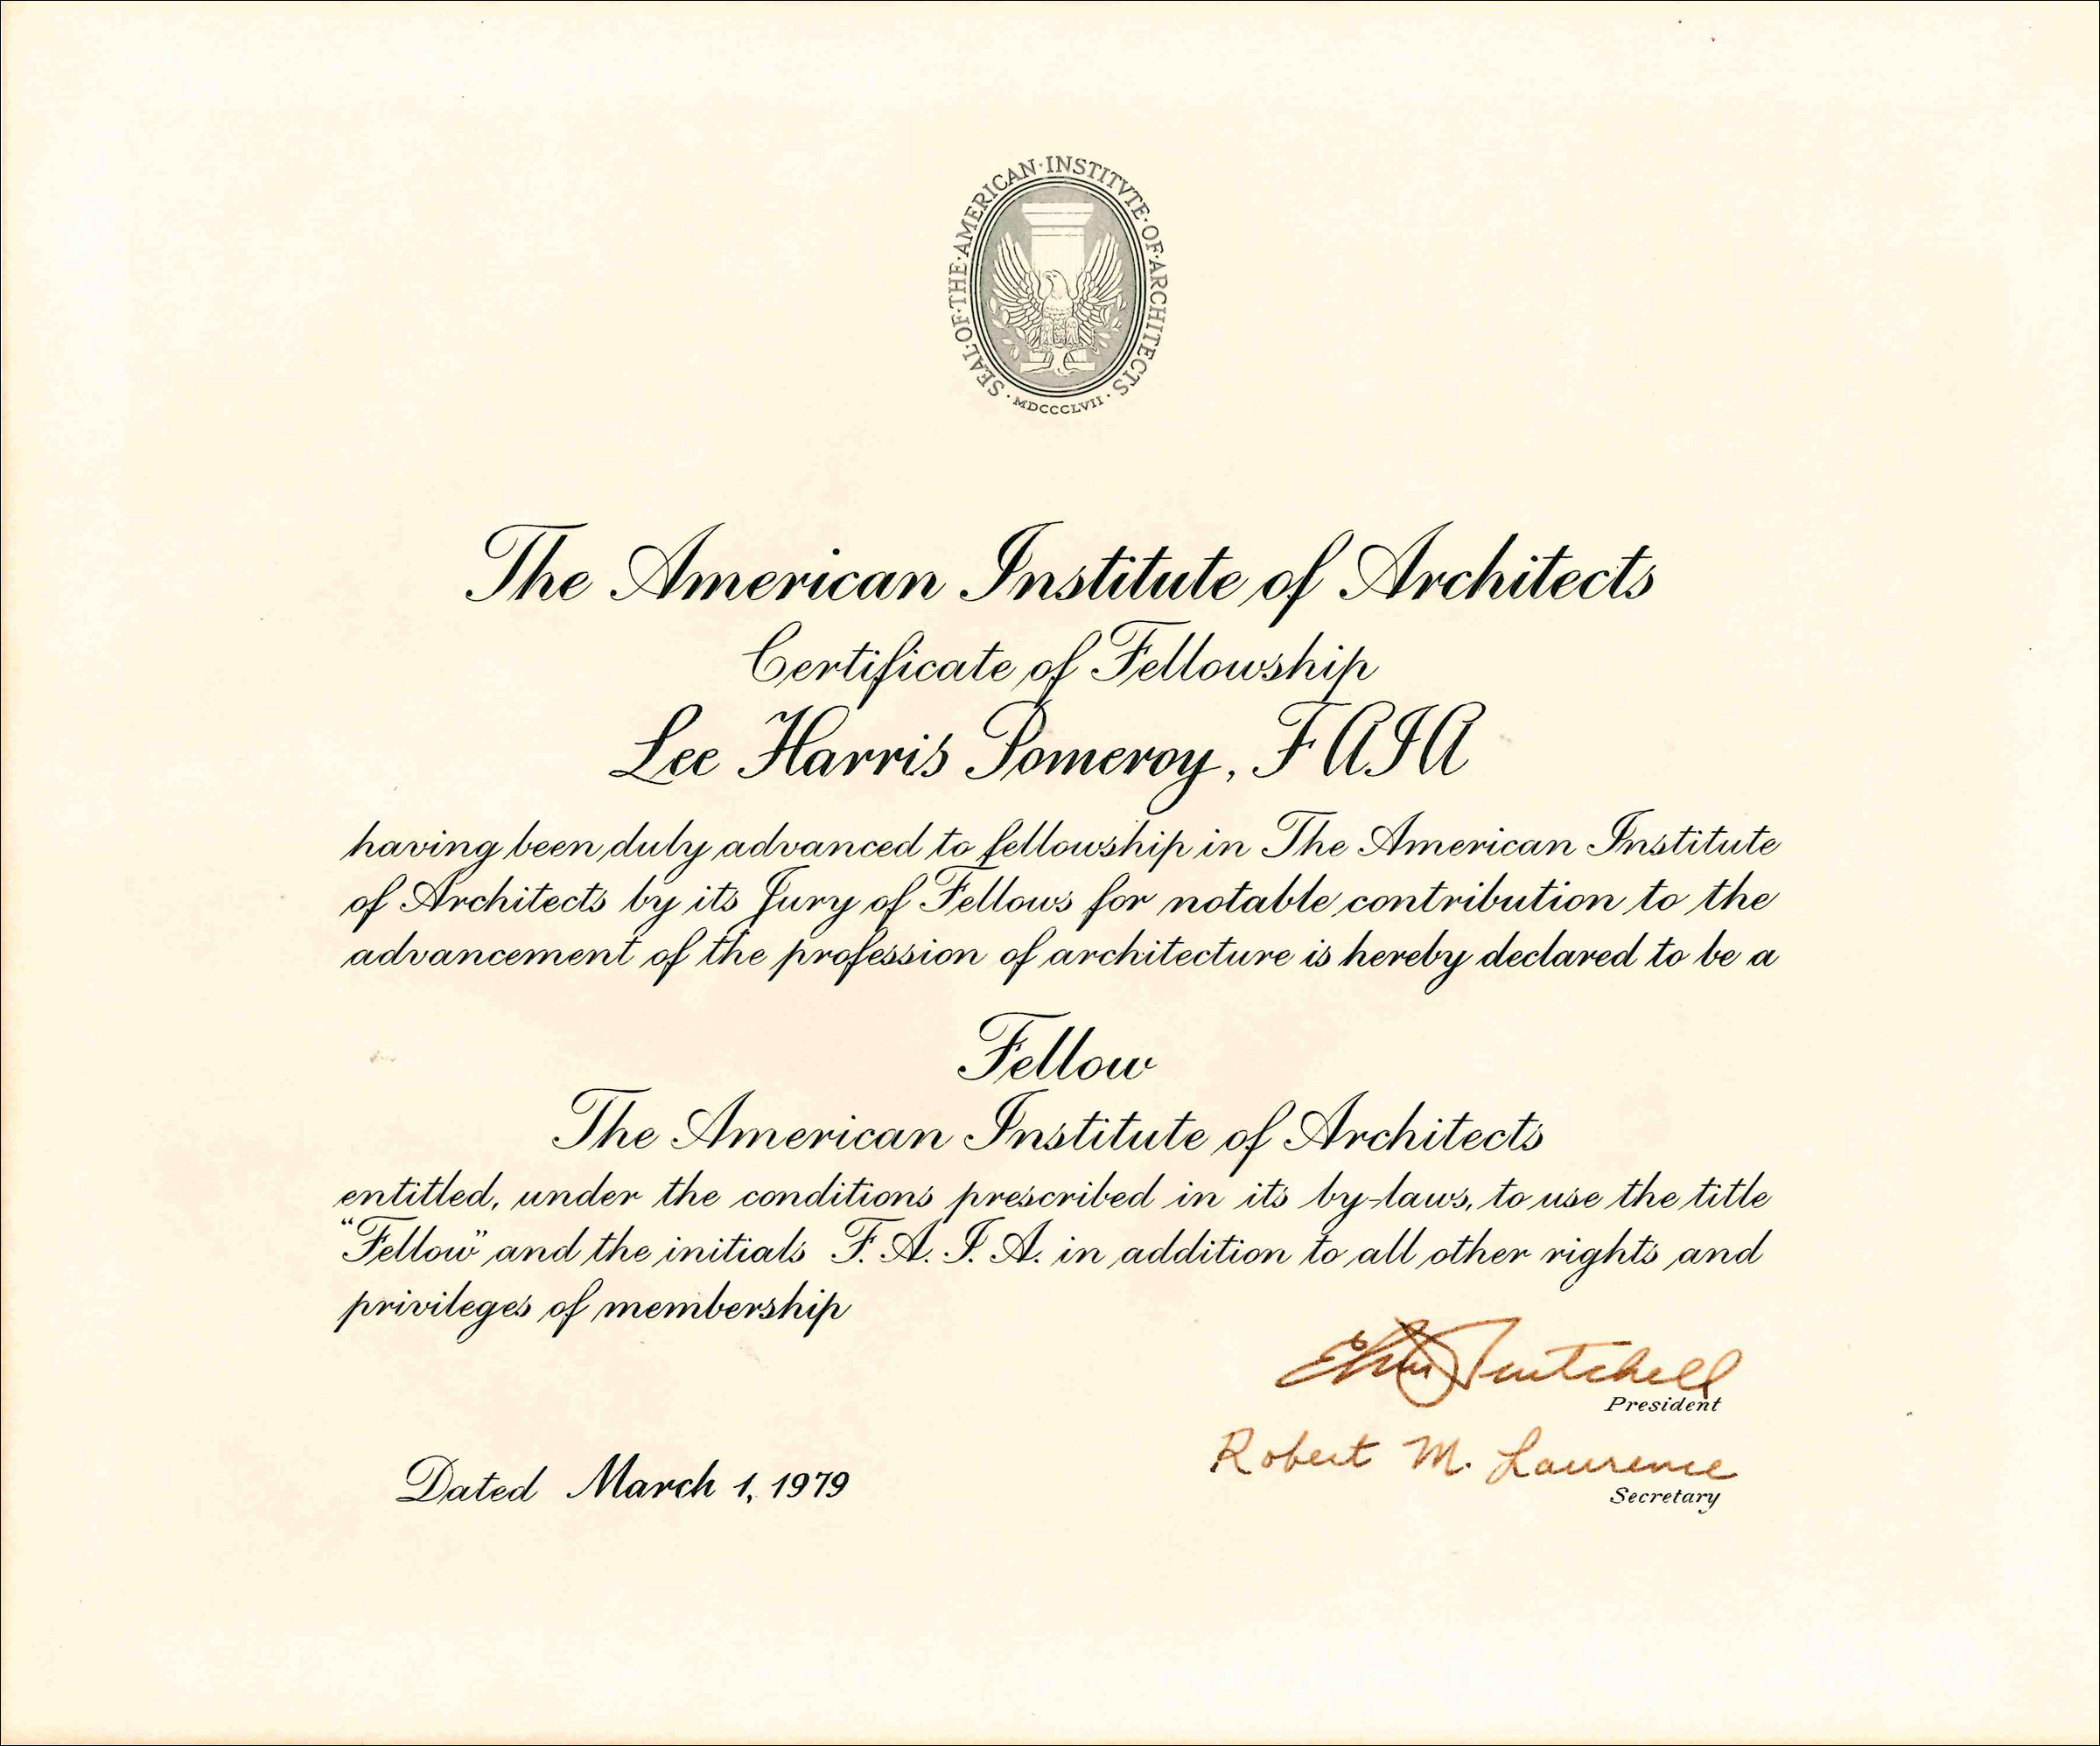 1979 AIA Certificate of Felloowship